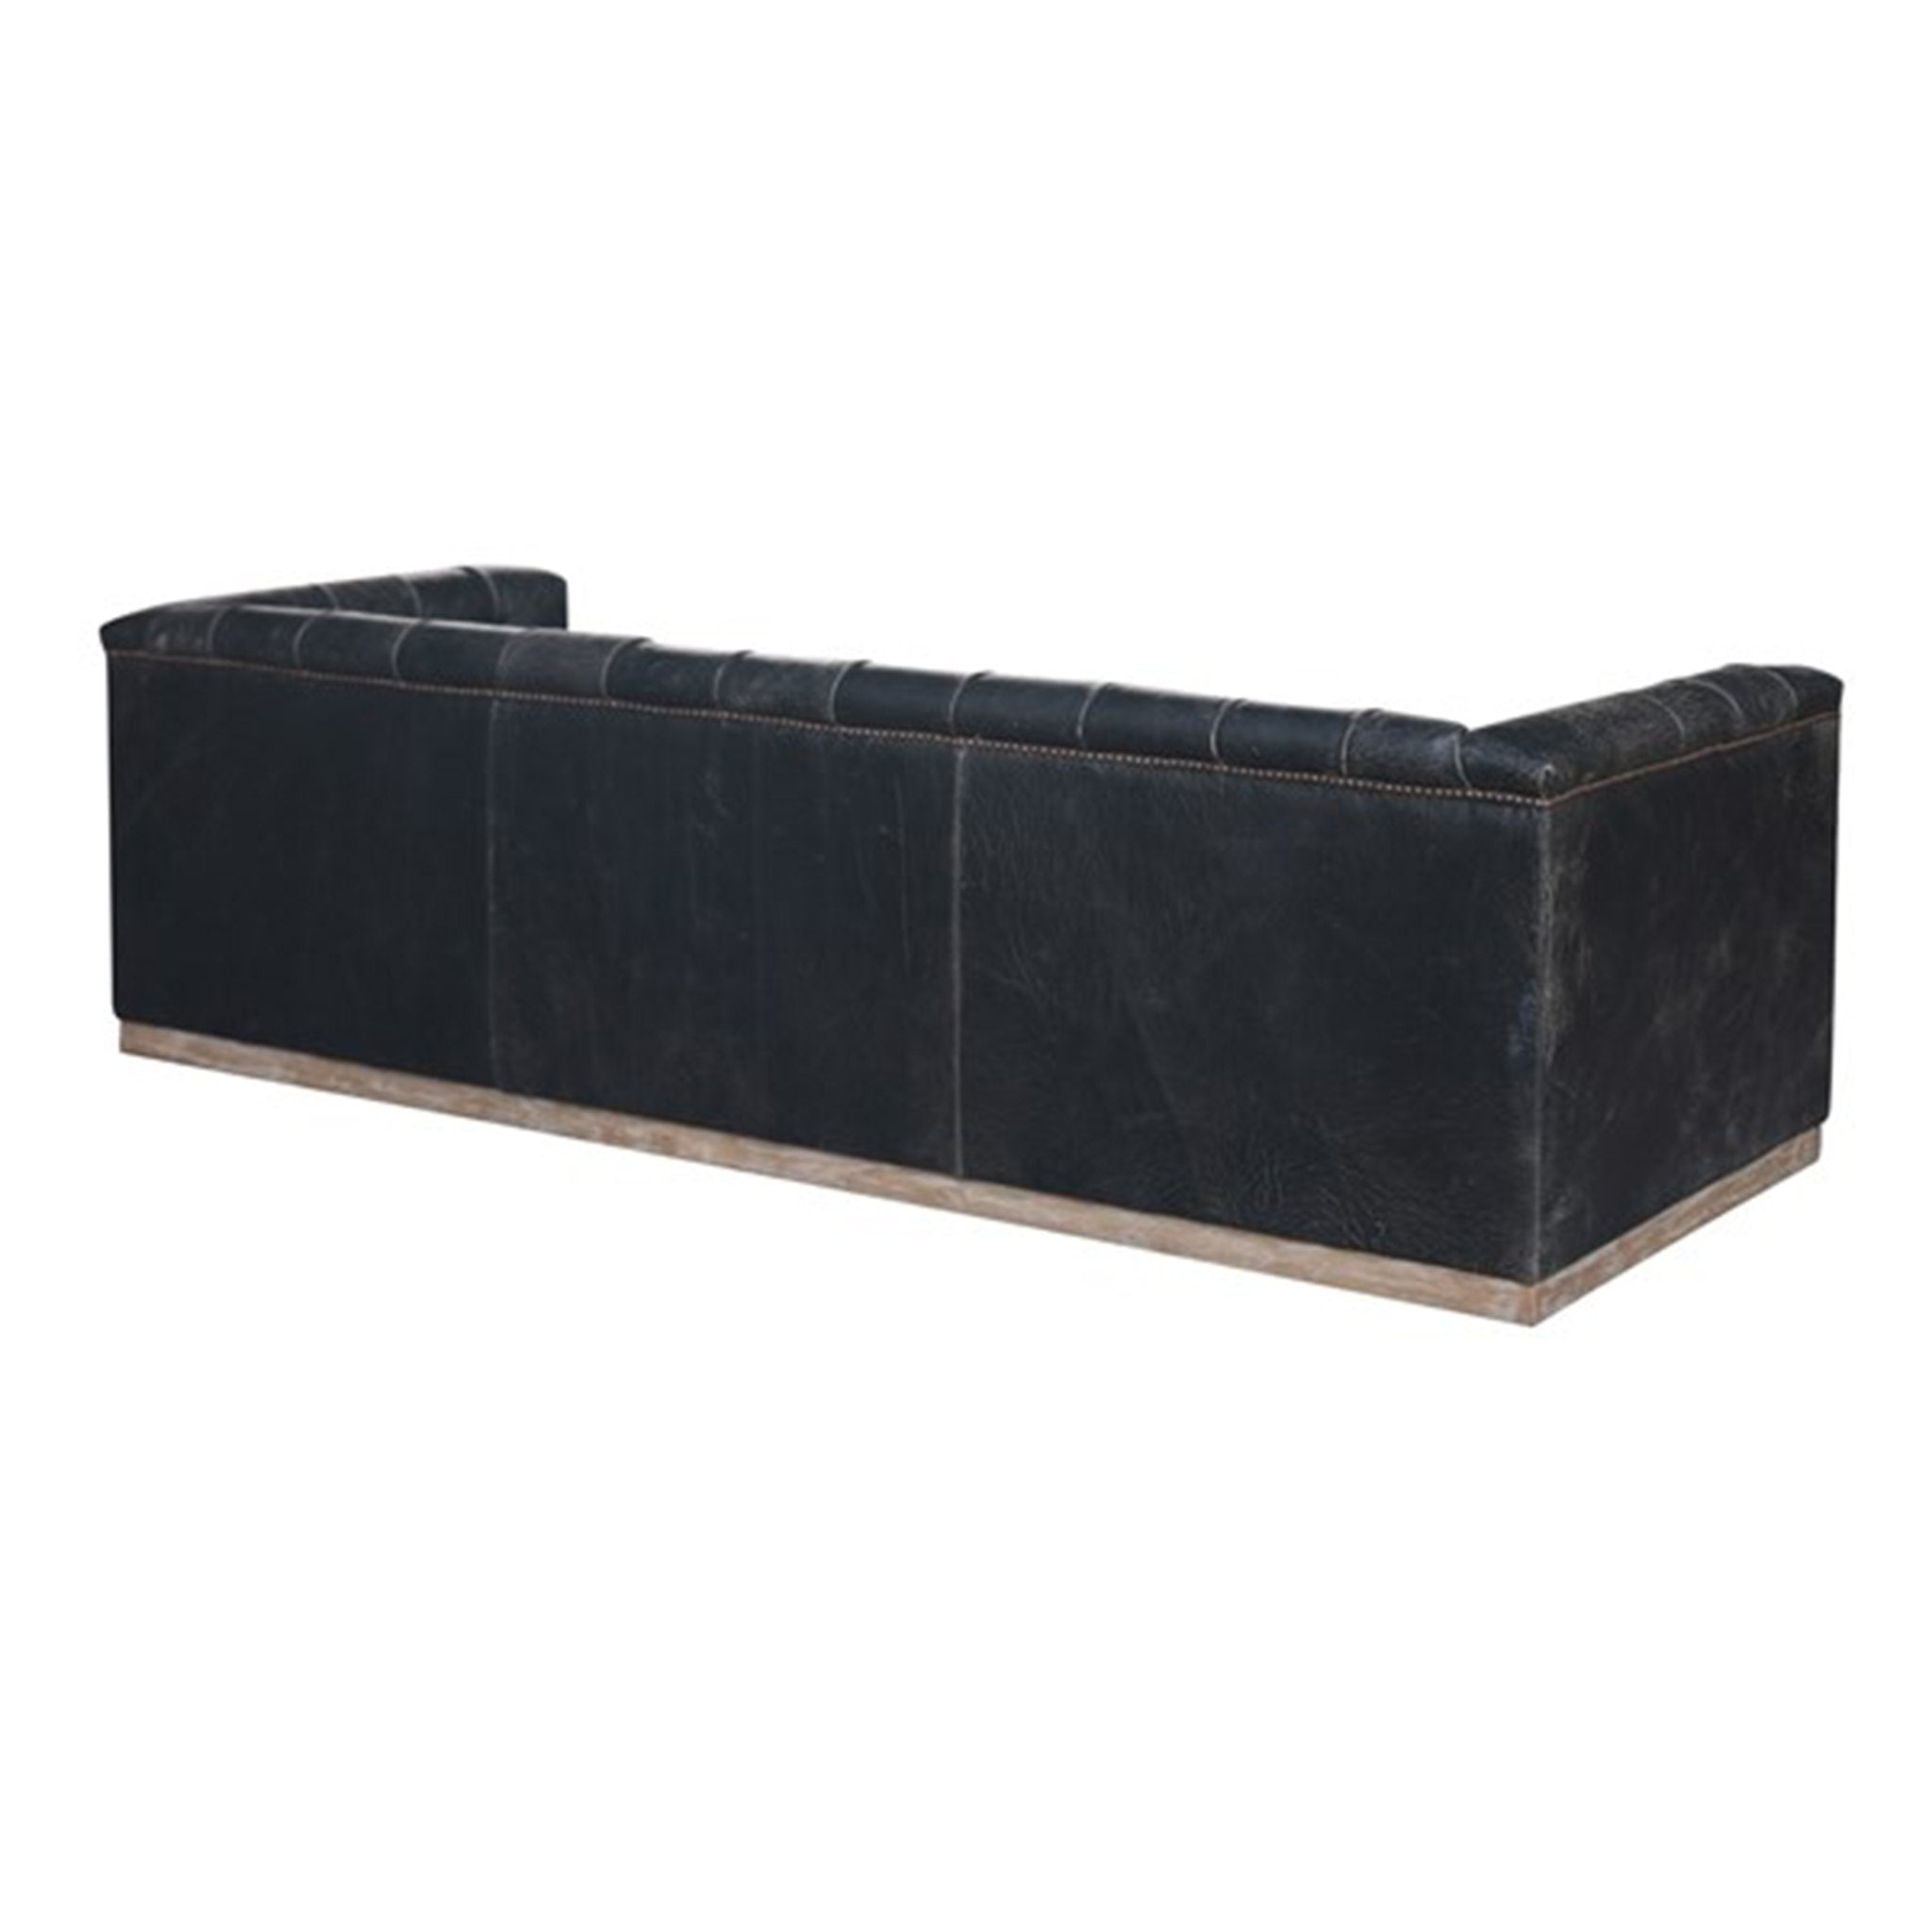 Library Sofa Distressed Black Leather Button Tufted - Furniture on Main